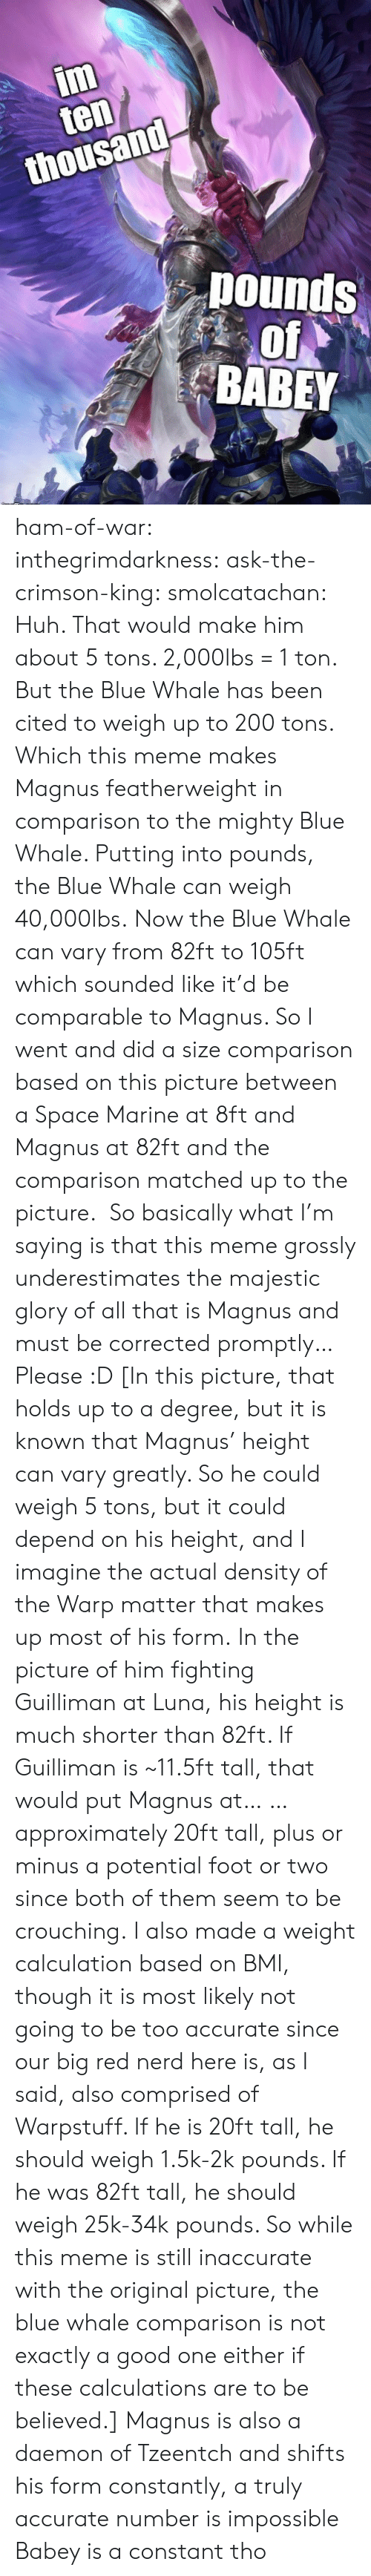 both of them: im  ten  thousand  pounds  of  BABEY ham-of-war: inthegrimdarkness:   ask-the-crimson-king:   smolcatachan:  Huh. That would make him about 5 tons. 2,000lbs = 1 ton. But the Blue Whale has been cited to weigh up to 200 tons. Which this meme makes Magnus featherweight in comparison to the mighty Blue Whale. Putting into pounds, the Blue Whale can weigh 40,000lbs. Now the Blue Whale can vary from 82ft to 105ft which sounded like it'd be comparable to Magnus. So I went and did a size comparison based on this picture between a Space Marine at 8ft and Magnus at 82ft and the comparison matched up to the picture.  So basically what I'm saying is that this meme grossly underestimates the majestic glory of all that is Magnus and must be corrected promptly…Please :D  [In this picture, that holds up to a degree, but it is known that Magnus' height can vary greatly. So he could weigh 5 tons, but it could depend on his height, and I imagine the actual density of the Warp matter that makes up most of his form. In the picture of him fighting Guilliman at Luna, his height is much shorter than 82ft. If Guilliman is ~11.5ft tall, that would put Magnus at… … approximately 20ft tall, plus or minus a potential foot or two since both of them seem to be crouching. I also made a weight calculation based on BMI, though it is most likely not going to be too accurate since our big red nerd here is, as I said, also comprised of Warpstuff. If he is 20ft tall, he should weigh 1.5k-2k pounds. If he was 82ft tall, he should weigh 25k-34k pounds. So while this meme is still inaccurate with the original picture, the blue whale comparison is not exactly a good one either if these calculations are to be believed.]   Magnus is also a daemon of Tzeentch and shifts his form constantly, a truly accurate number is impossible    Babey is a constant tho